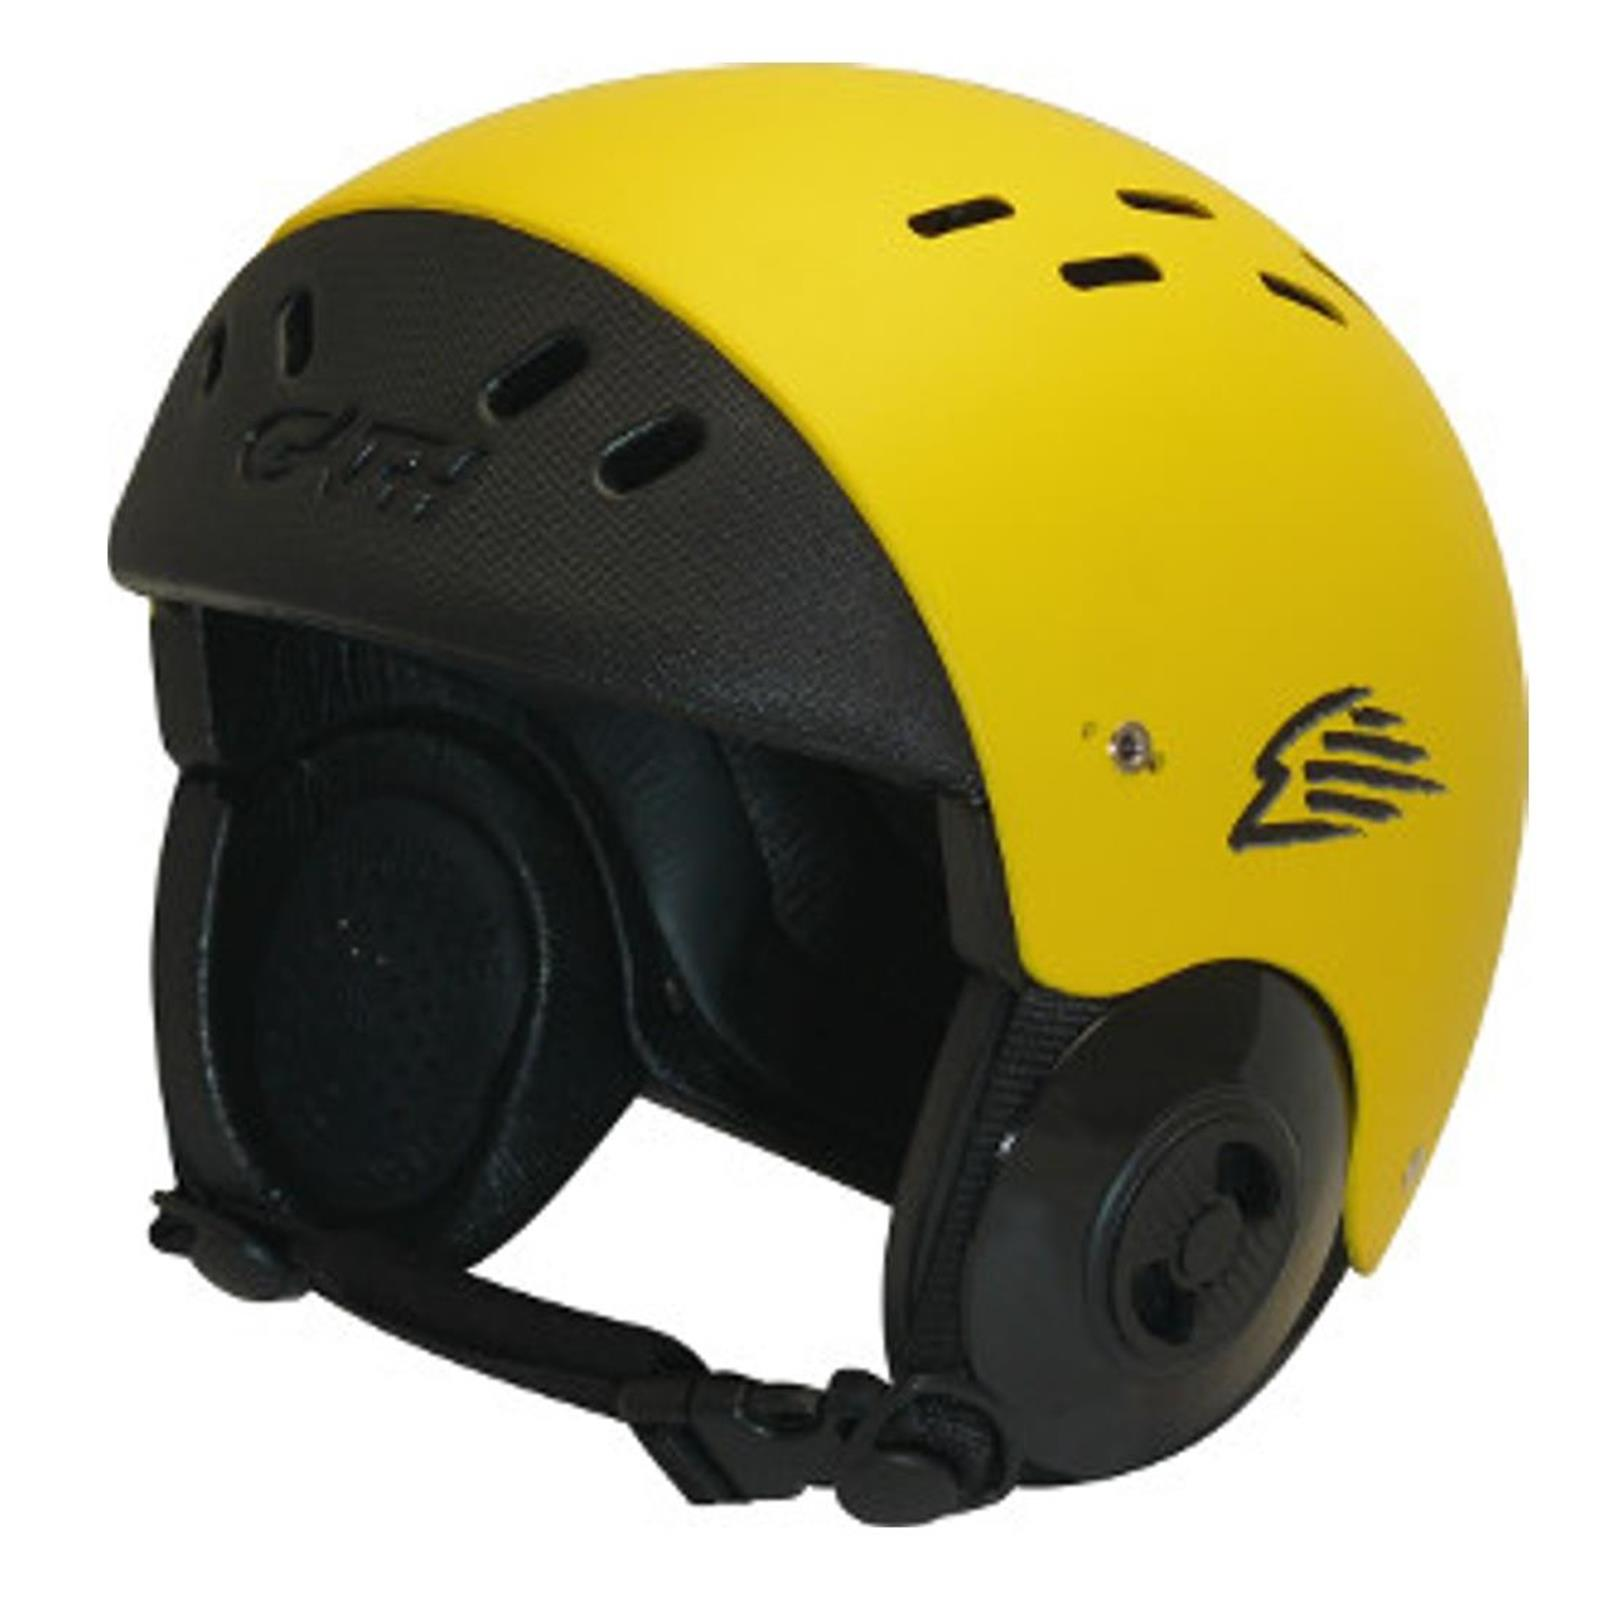 GATH Wassersport Helm SFC Convertible L Gelb matt